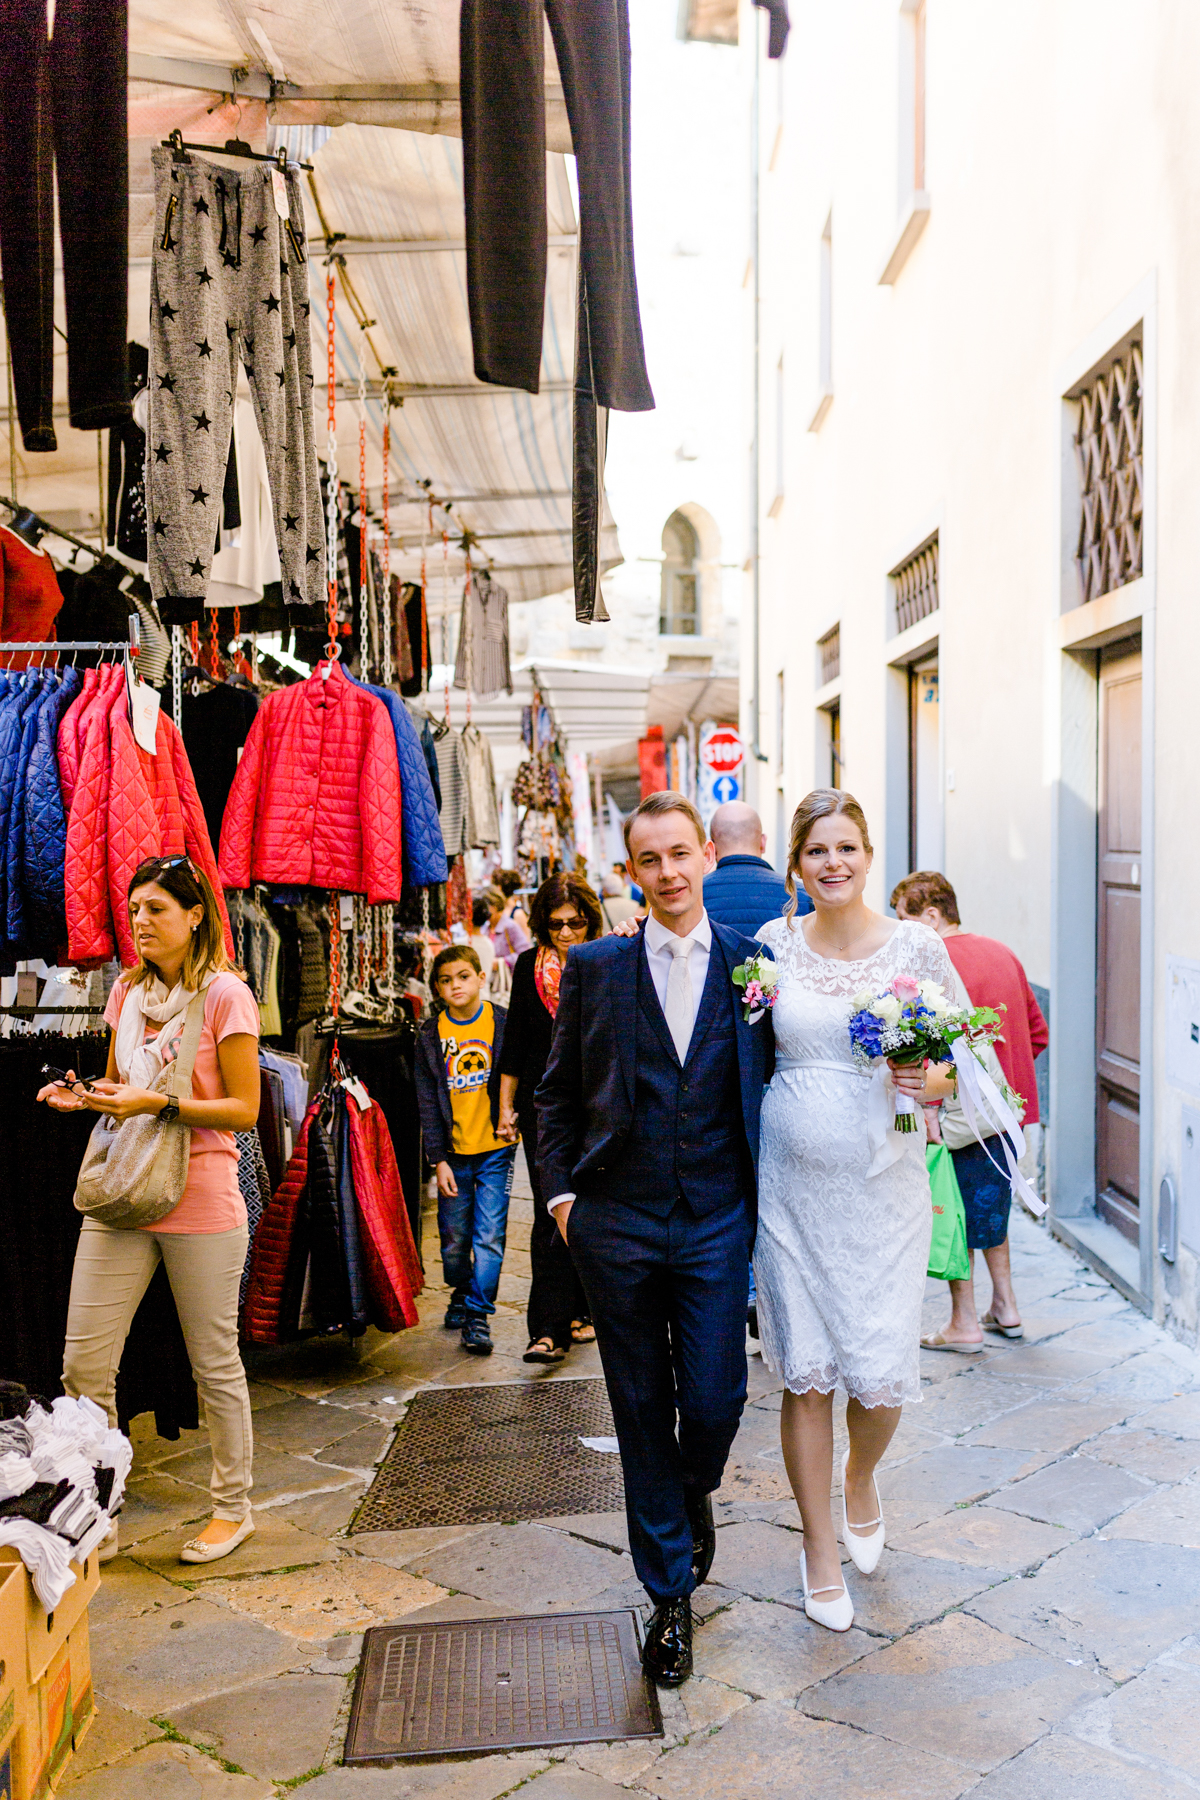 Romy_Alfons_Destination_Wedding_Tuscany_Toskana_Italy_me_him_photography-150